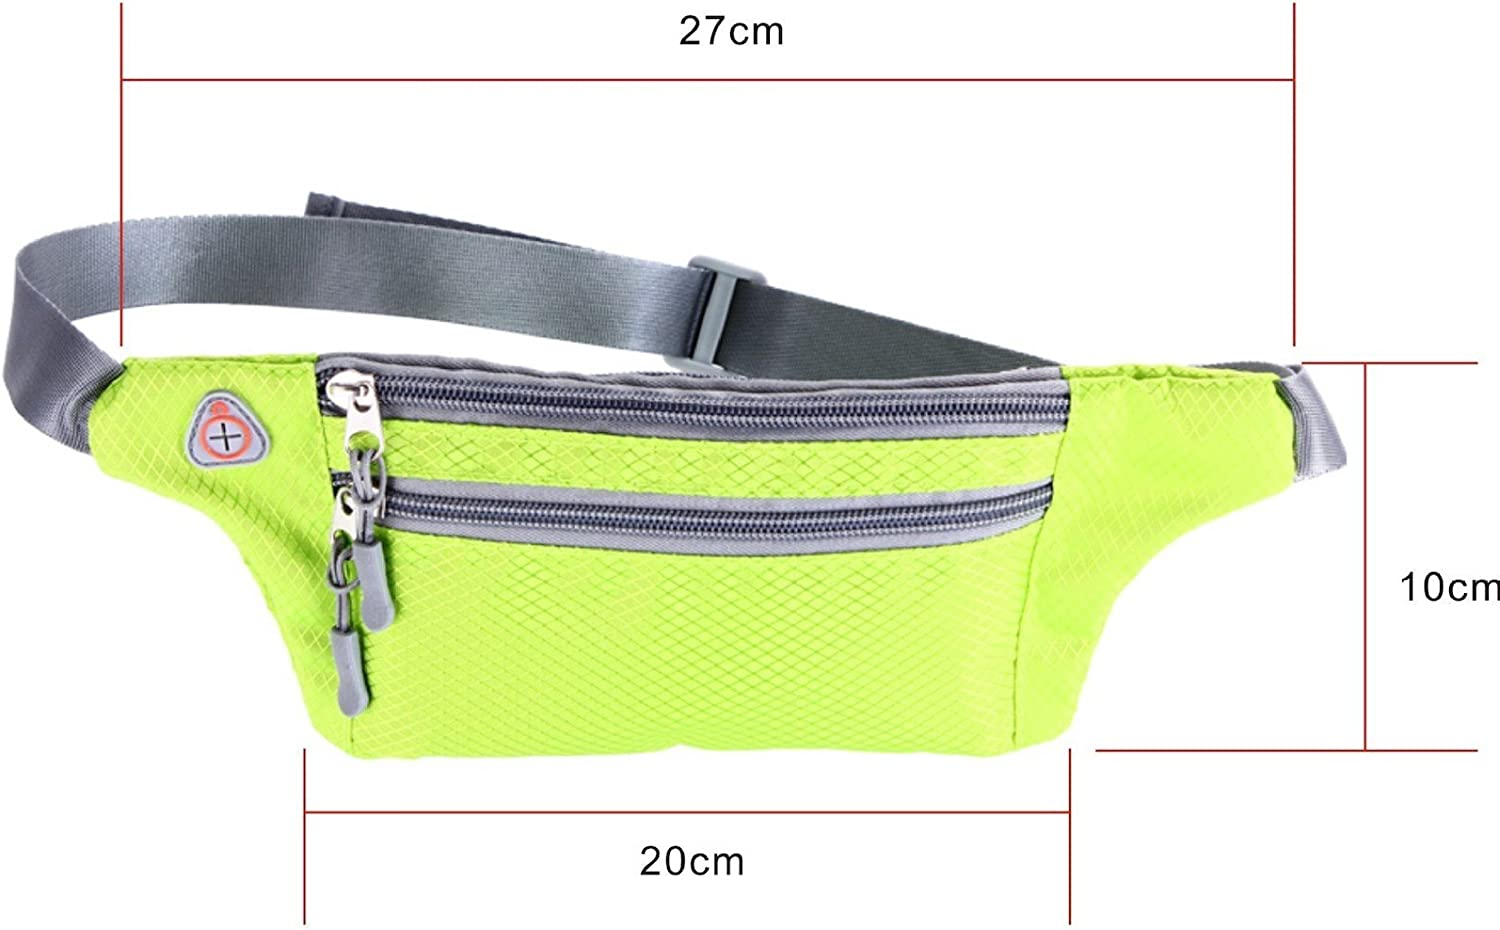 Elonglin Unisex Running Belt Waist Pack Belt Fitness Belts Waterproof Sweat-Resistant for All Mobile Phones 4-6 inch Zipped Pocket with Headphone Hole Traveling Hiking Jogging Walking Gym Yoga Cycling